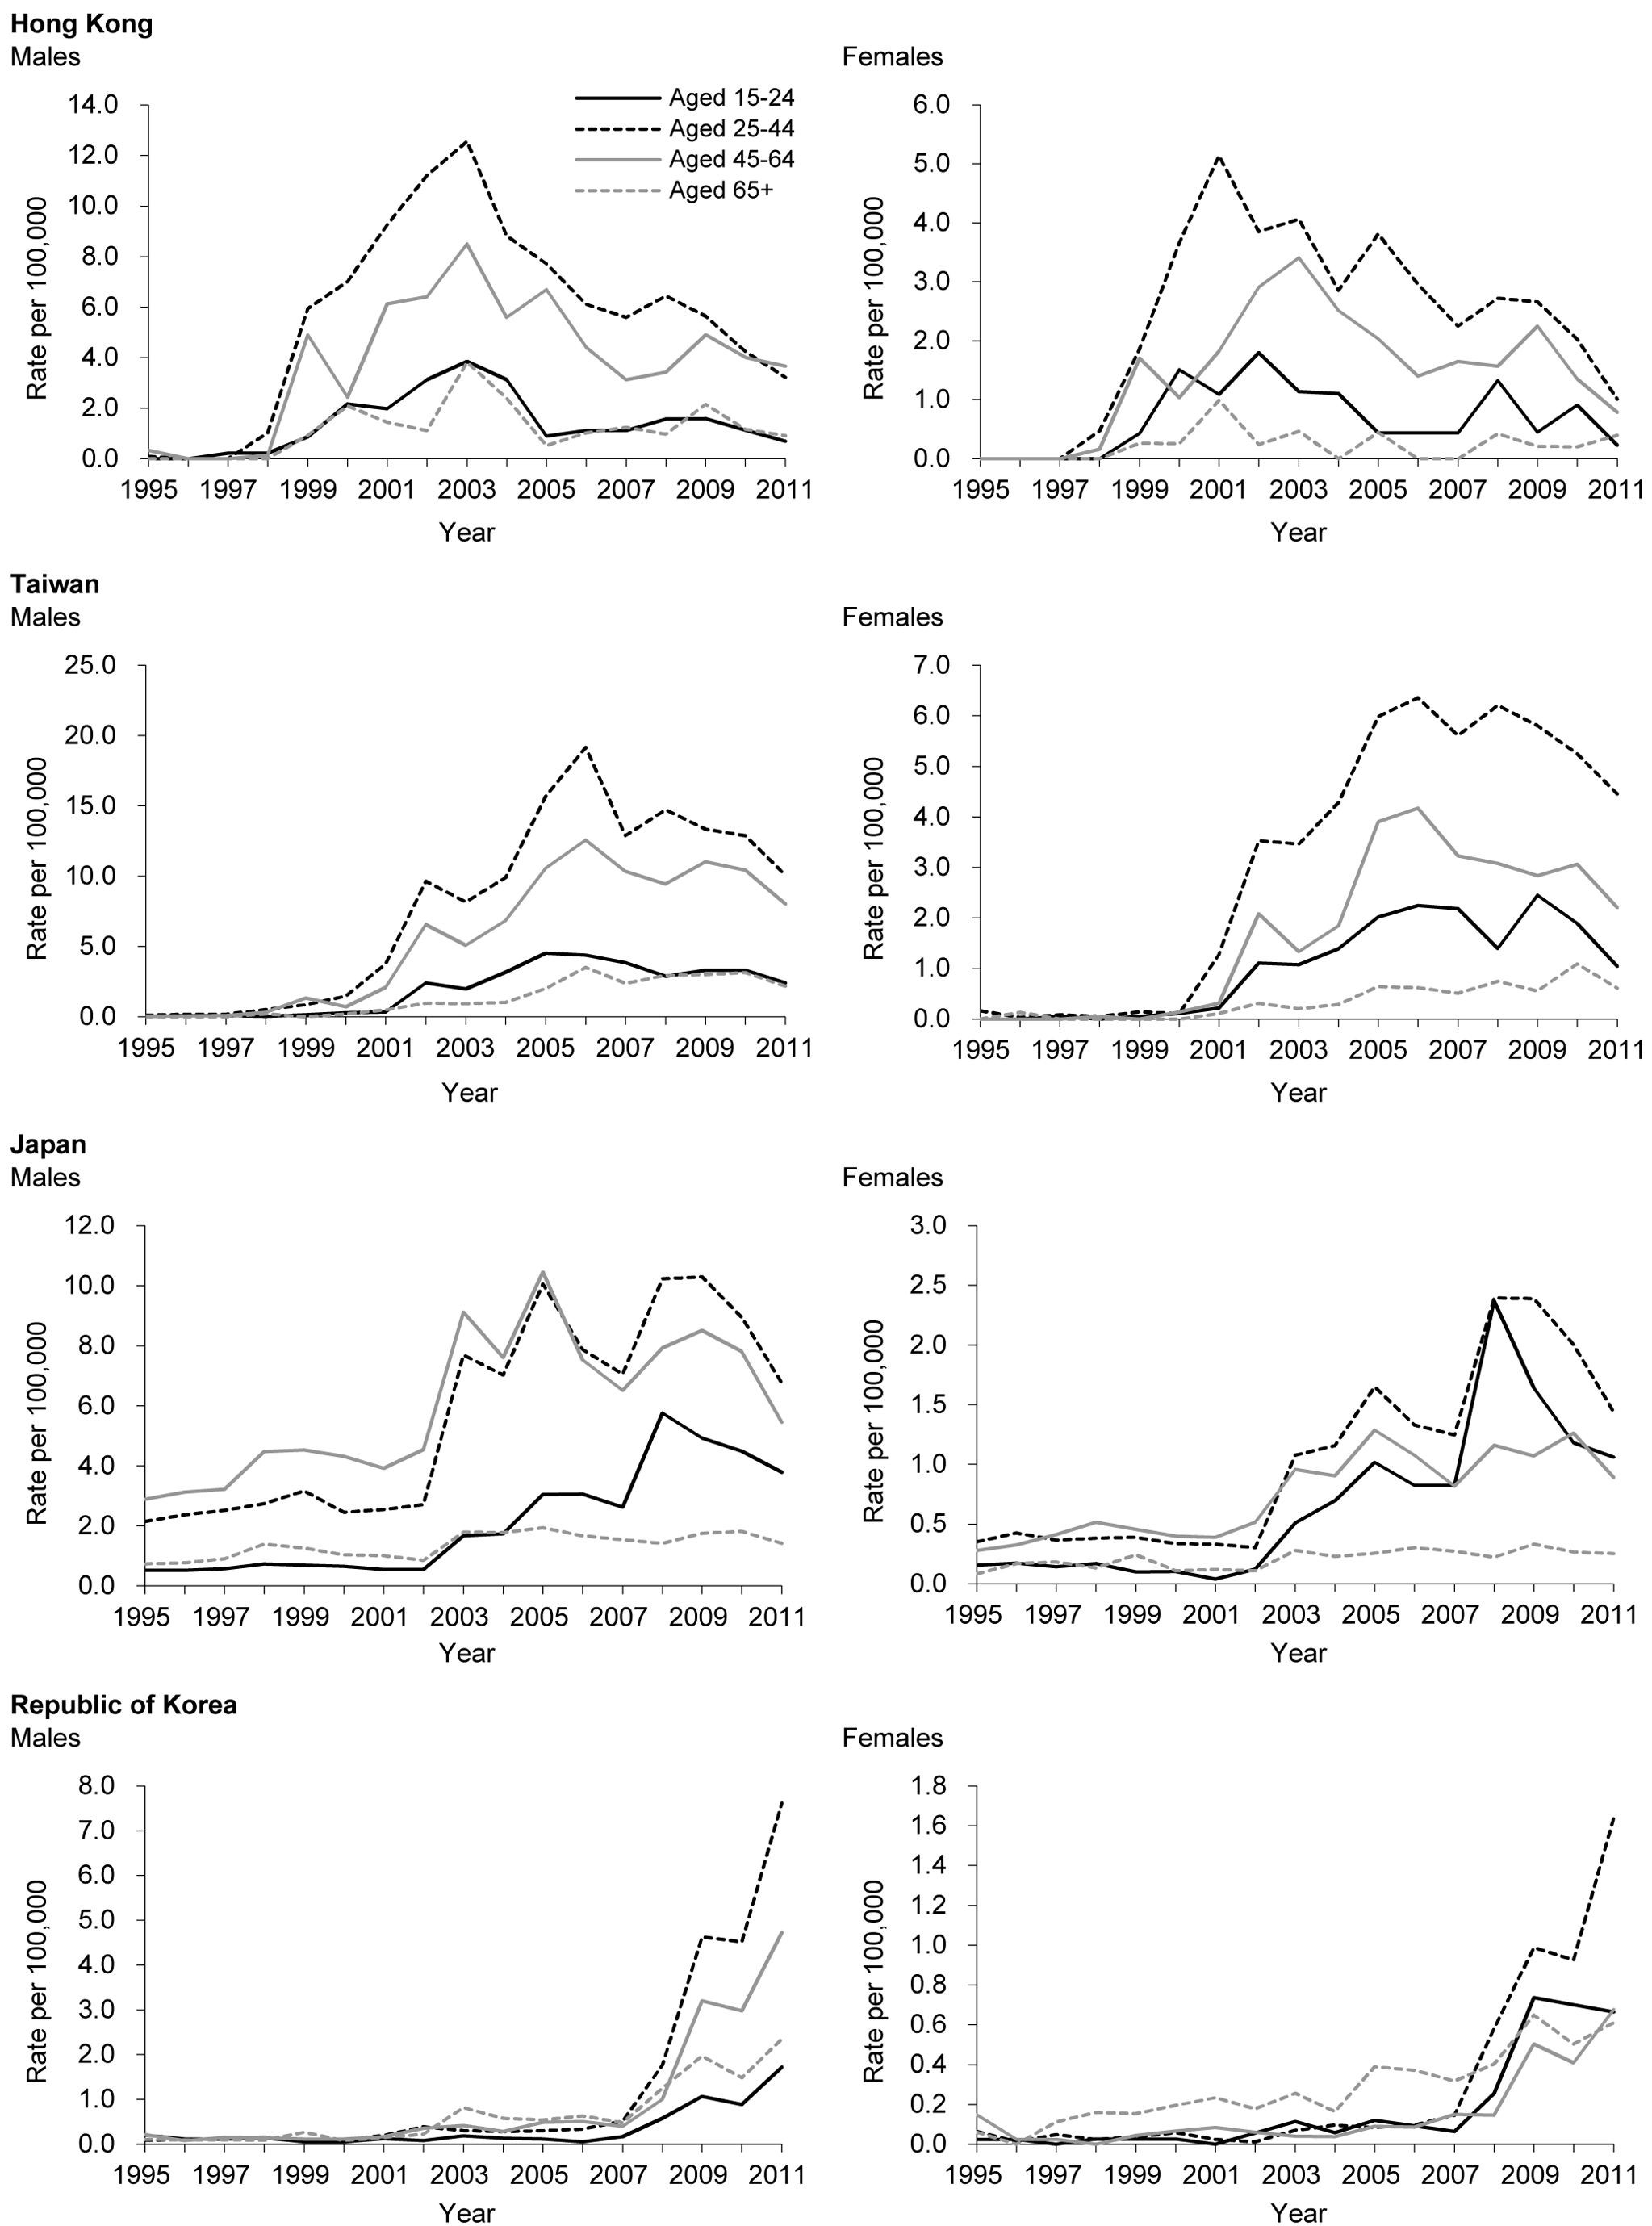 Sex- and age-specific time trends in charcoal-burning suicide in Hong Kong, Taiwan, Japan, and the Republic of Korea.